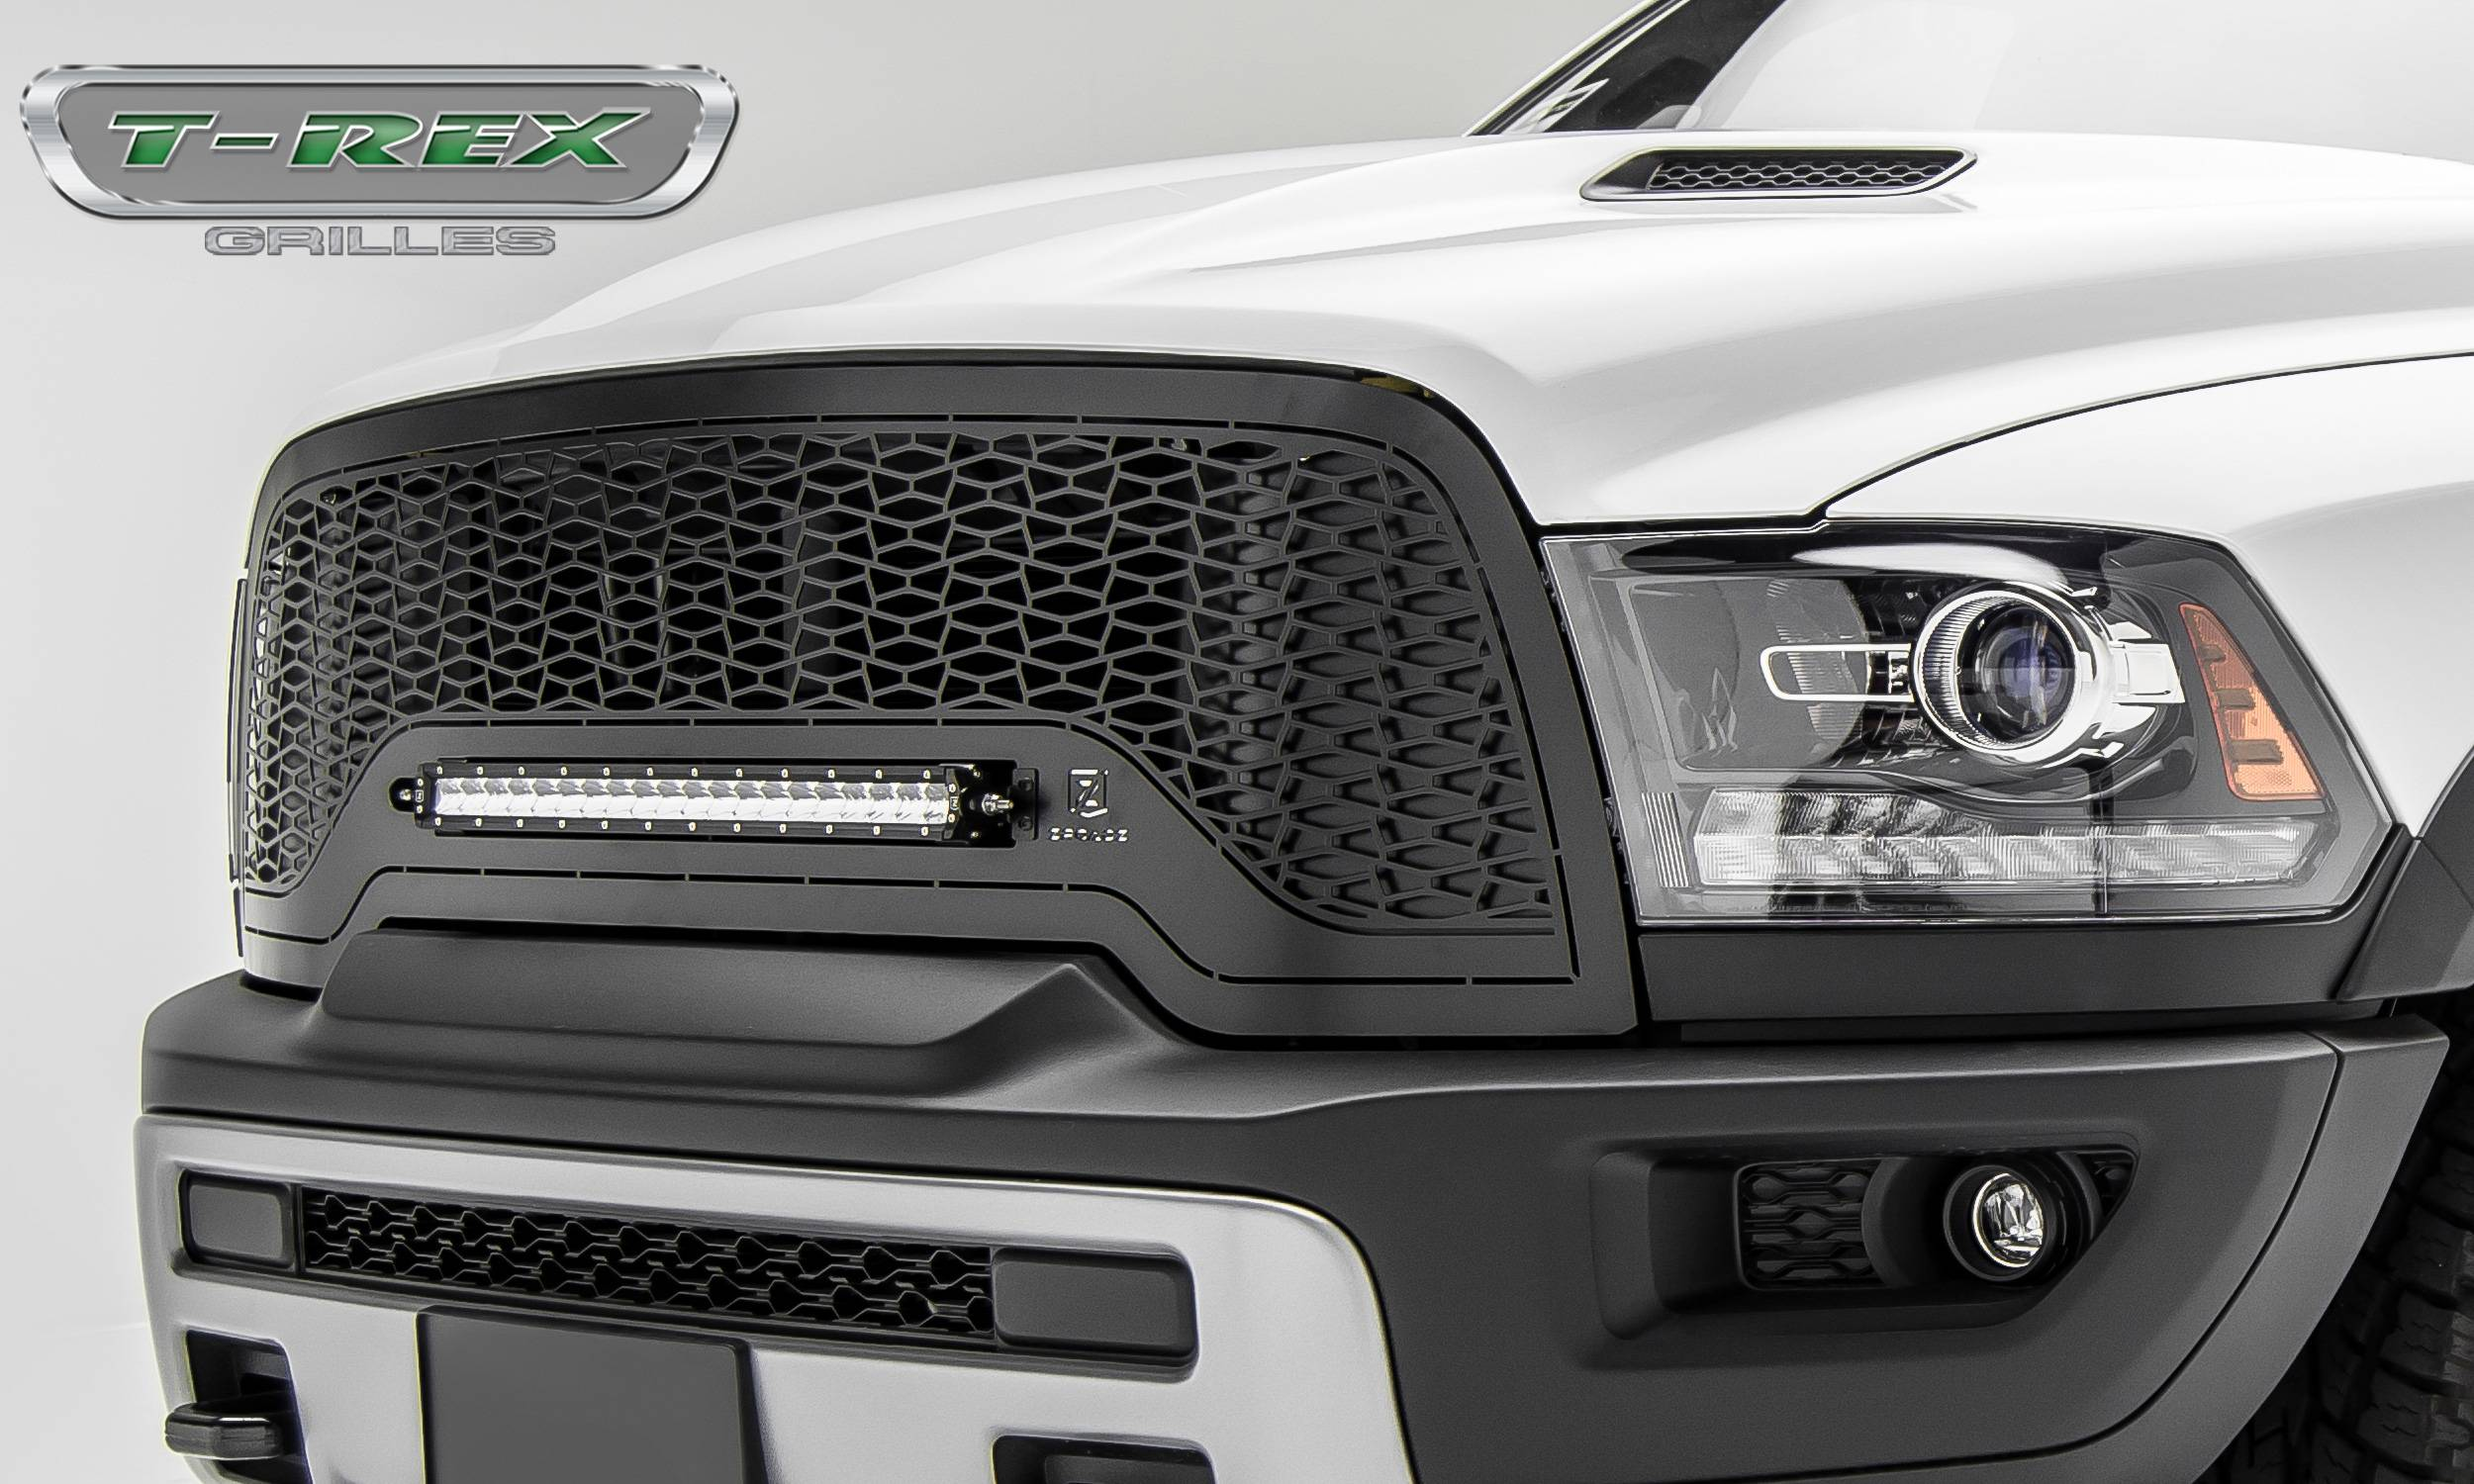 F143867469 t rex ram rebel zroadz series main grille replacement w one 20 inch led light bar with wiring harness at creativeand.co